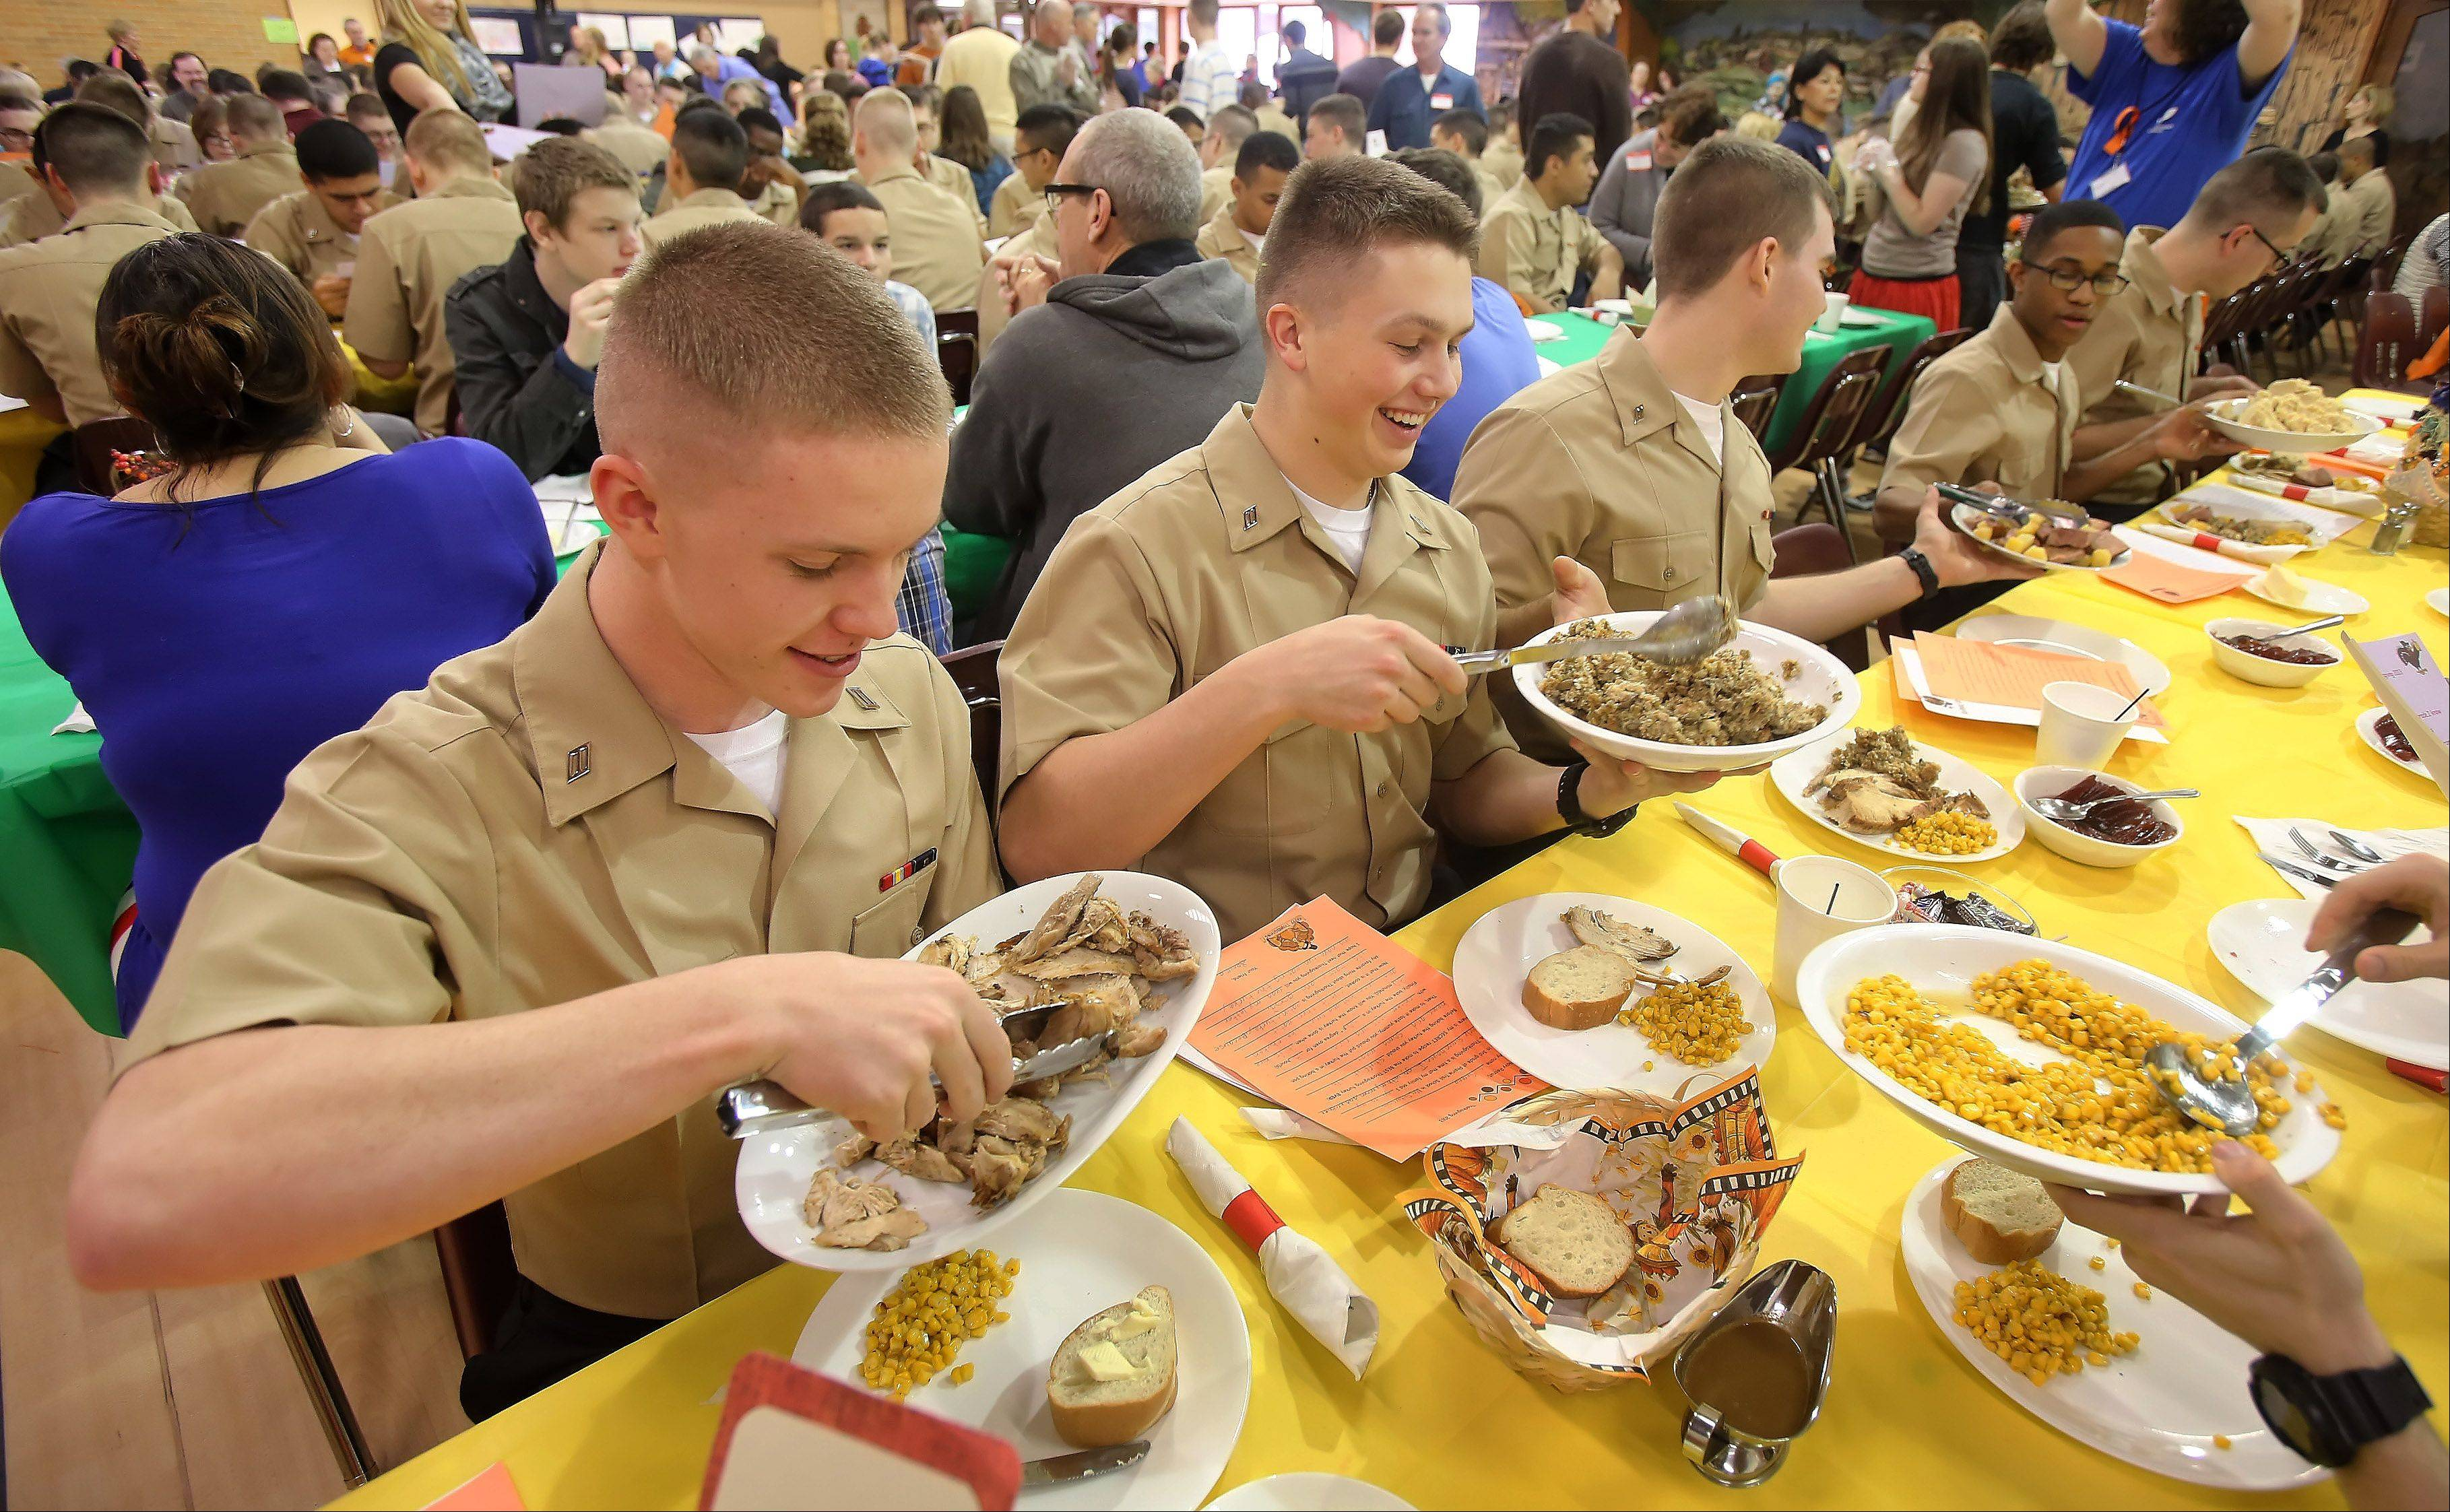 U.S. Navy Seaman Wade Eggert of Reno, Nevada, left, and Craig Bandy of Eagle, Idaho, serve themselves during the annual free Thanksgiving dinner offered by the Gurnee Community Church for sailors and residents of the community. The church hosted 165 sailors from Great Lakes Naval Station and provided them with dinner, recreational activities and a phone to call home.